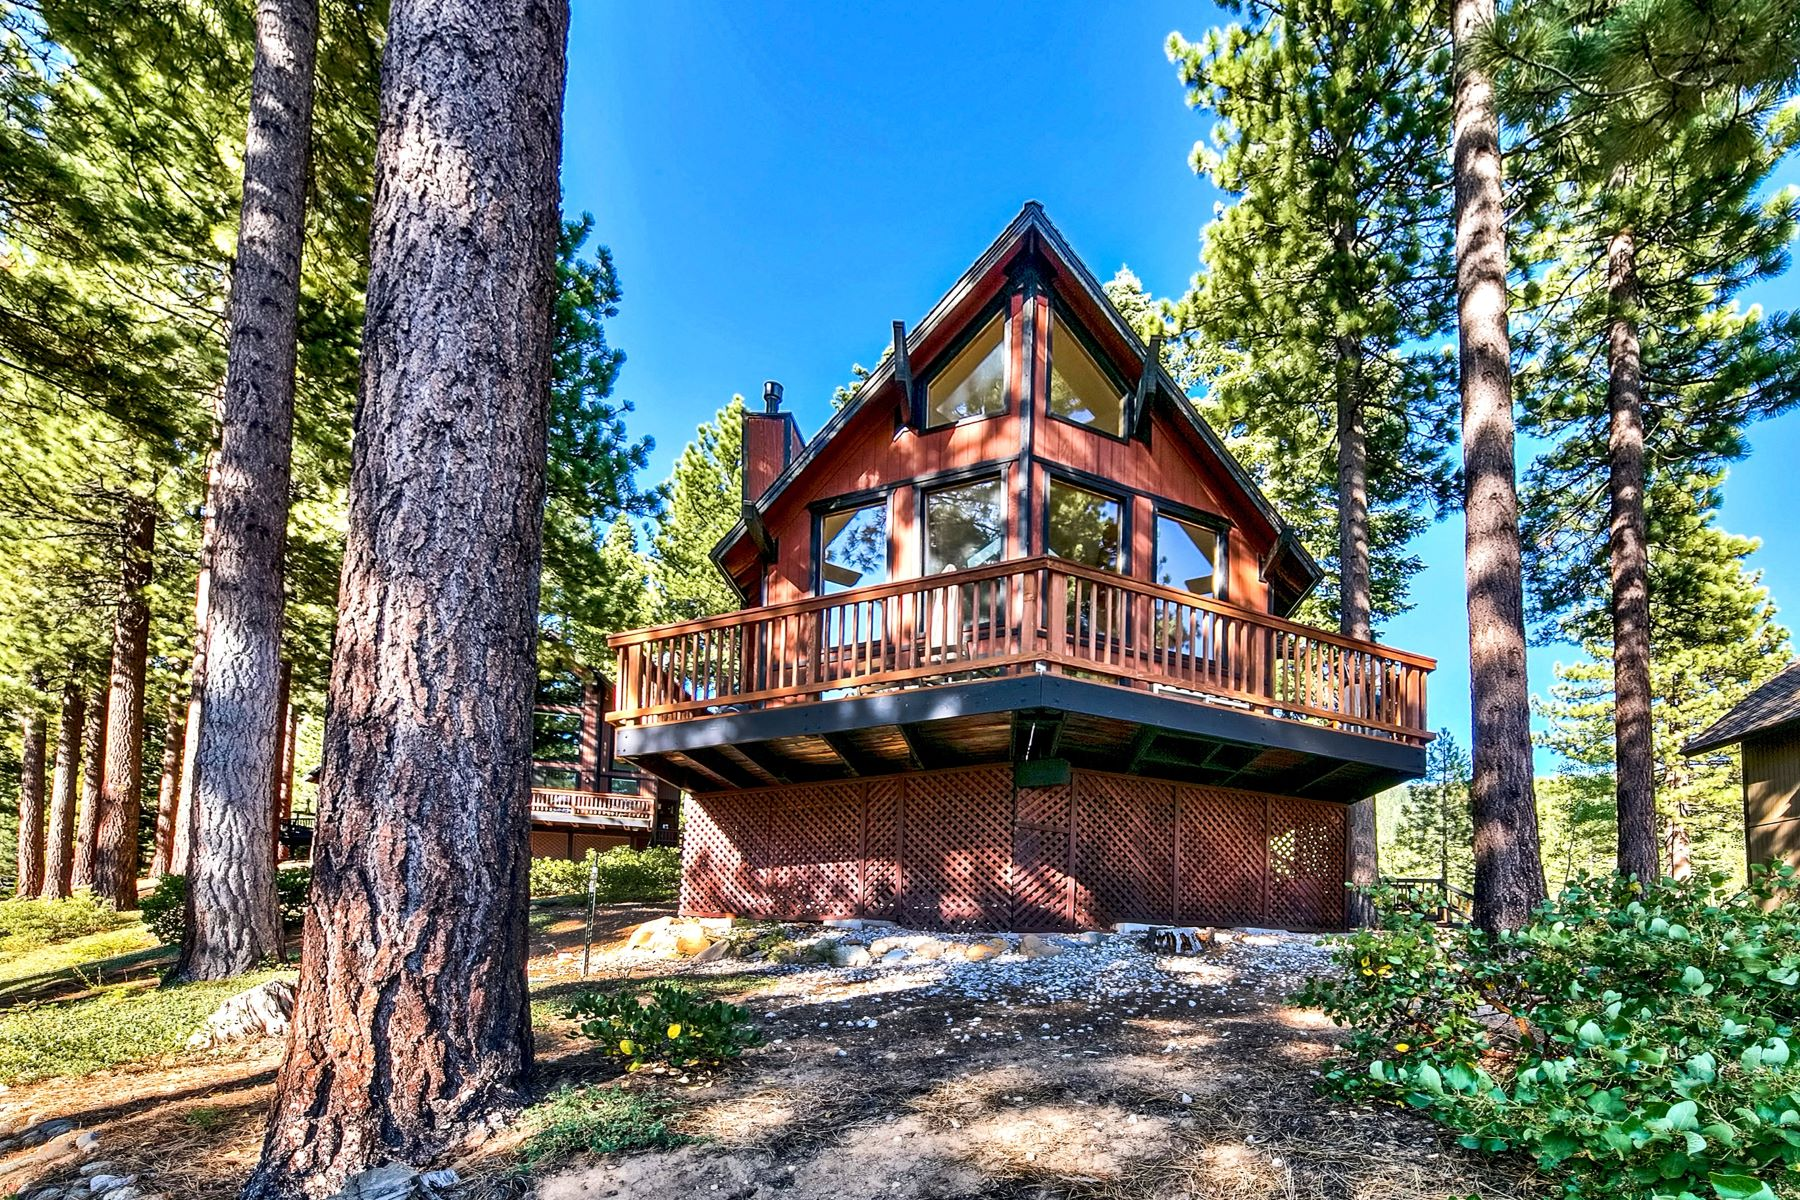 Single Family Homes for Active at 949 Dana Court #9, Incline Village, NV 89451 949 Dana Court #9 Incline Village, Nevada 89451 United States